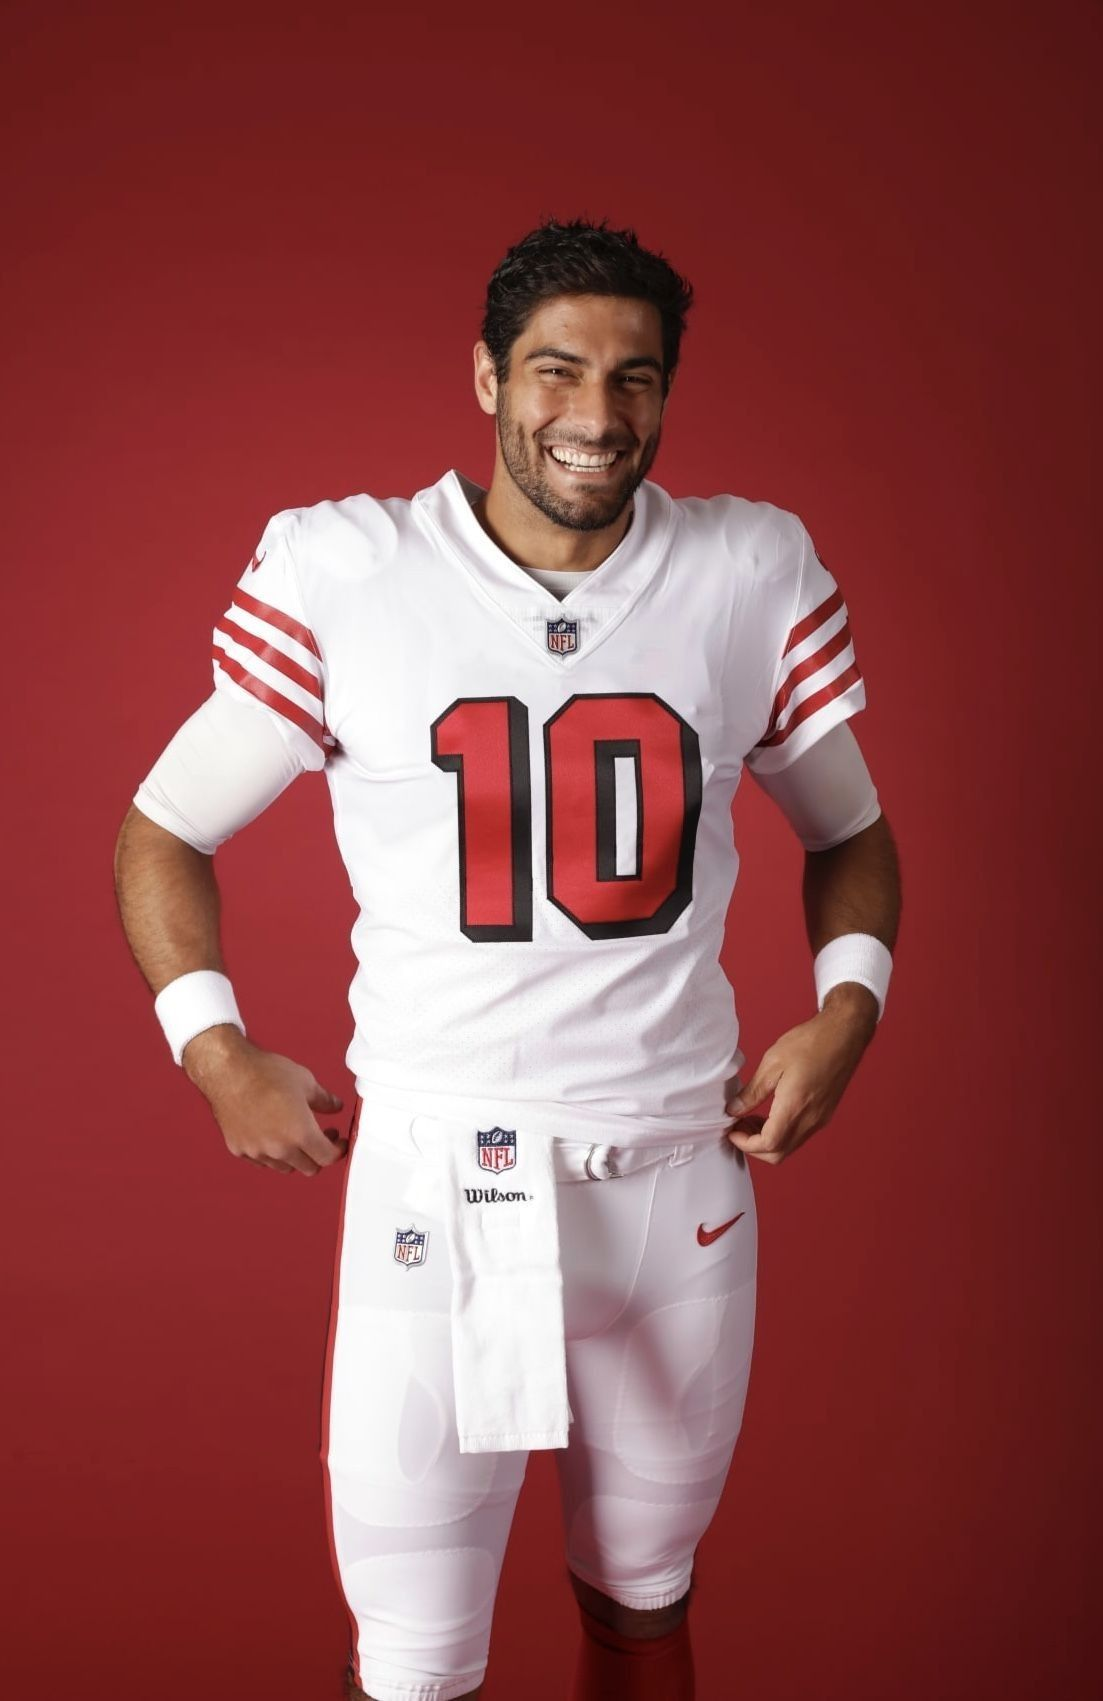 Pin By Ju Etges On Nfl In 2020 49ers Quarterback 49ers Players Nfl Players